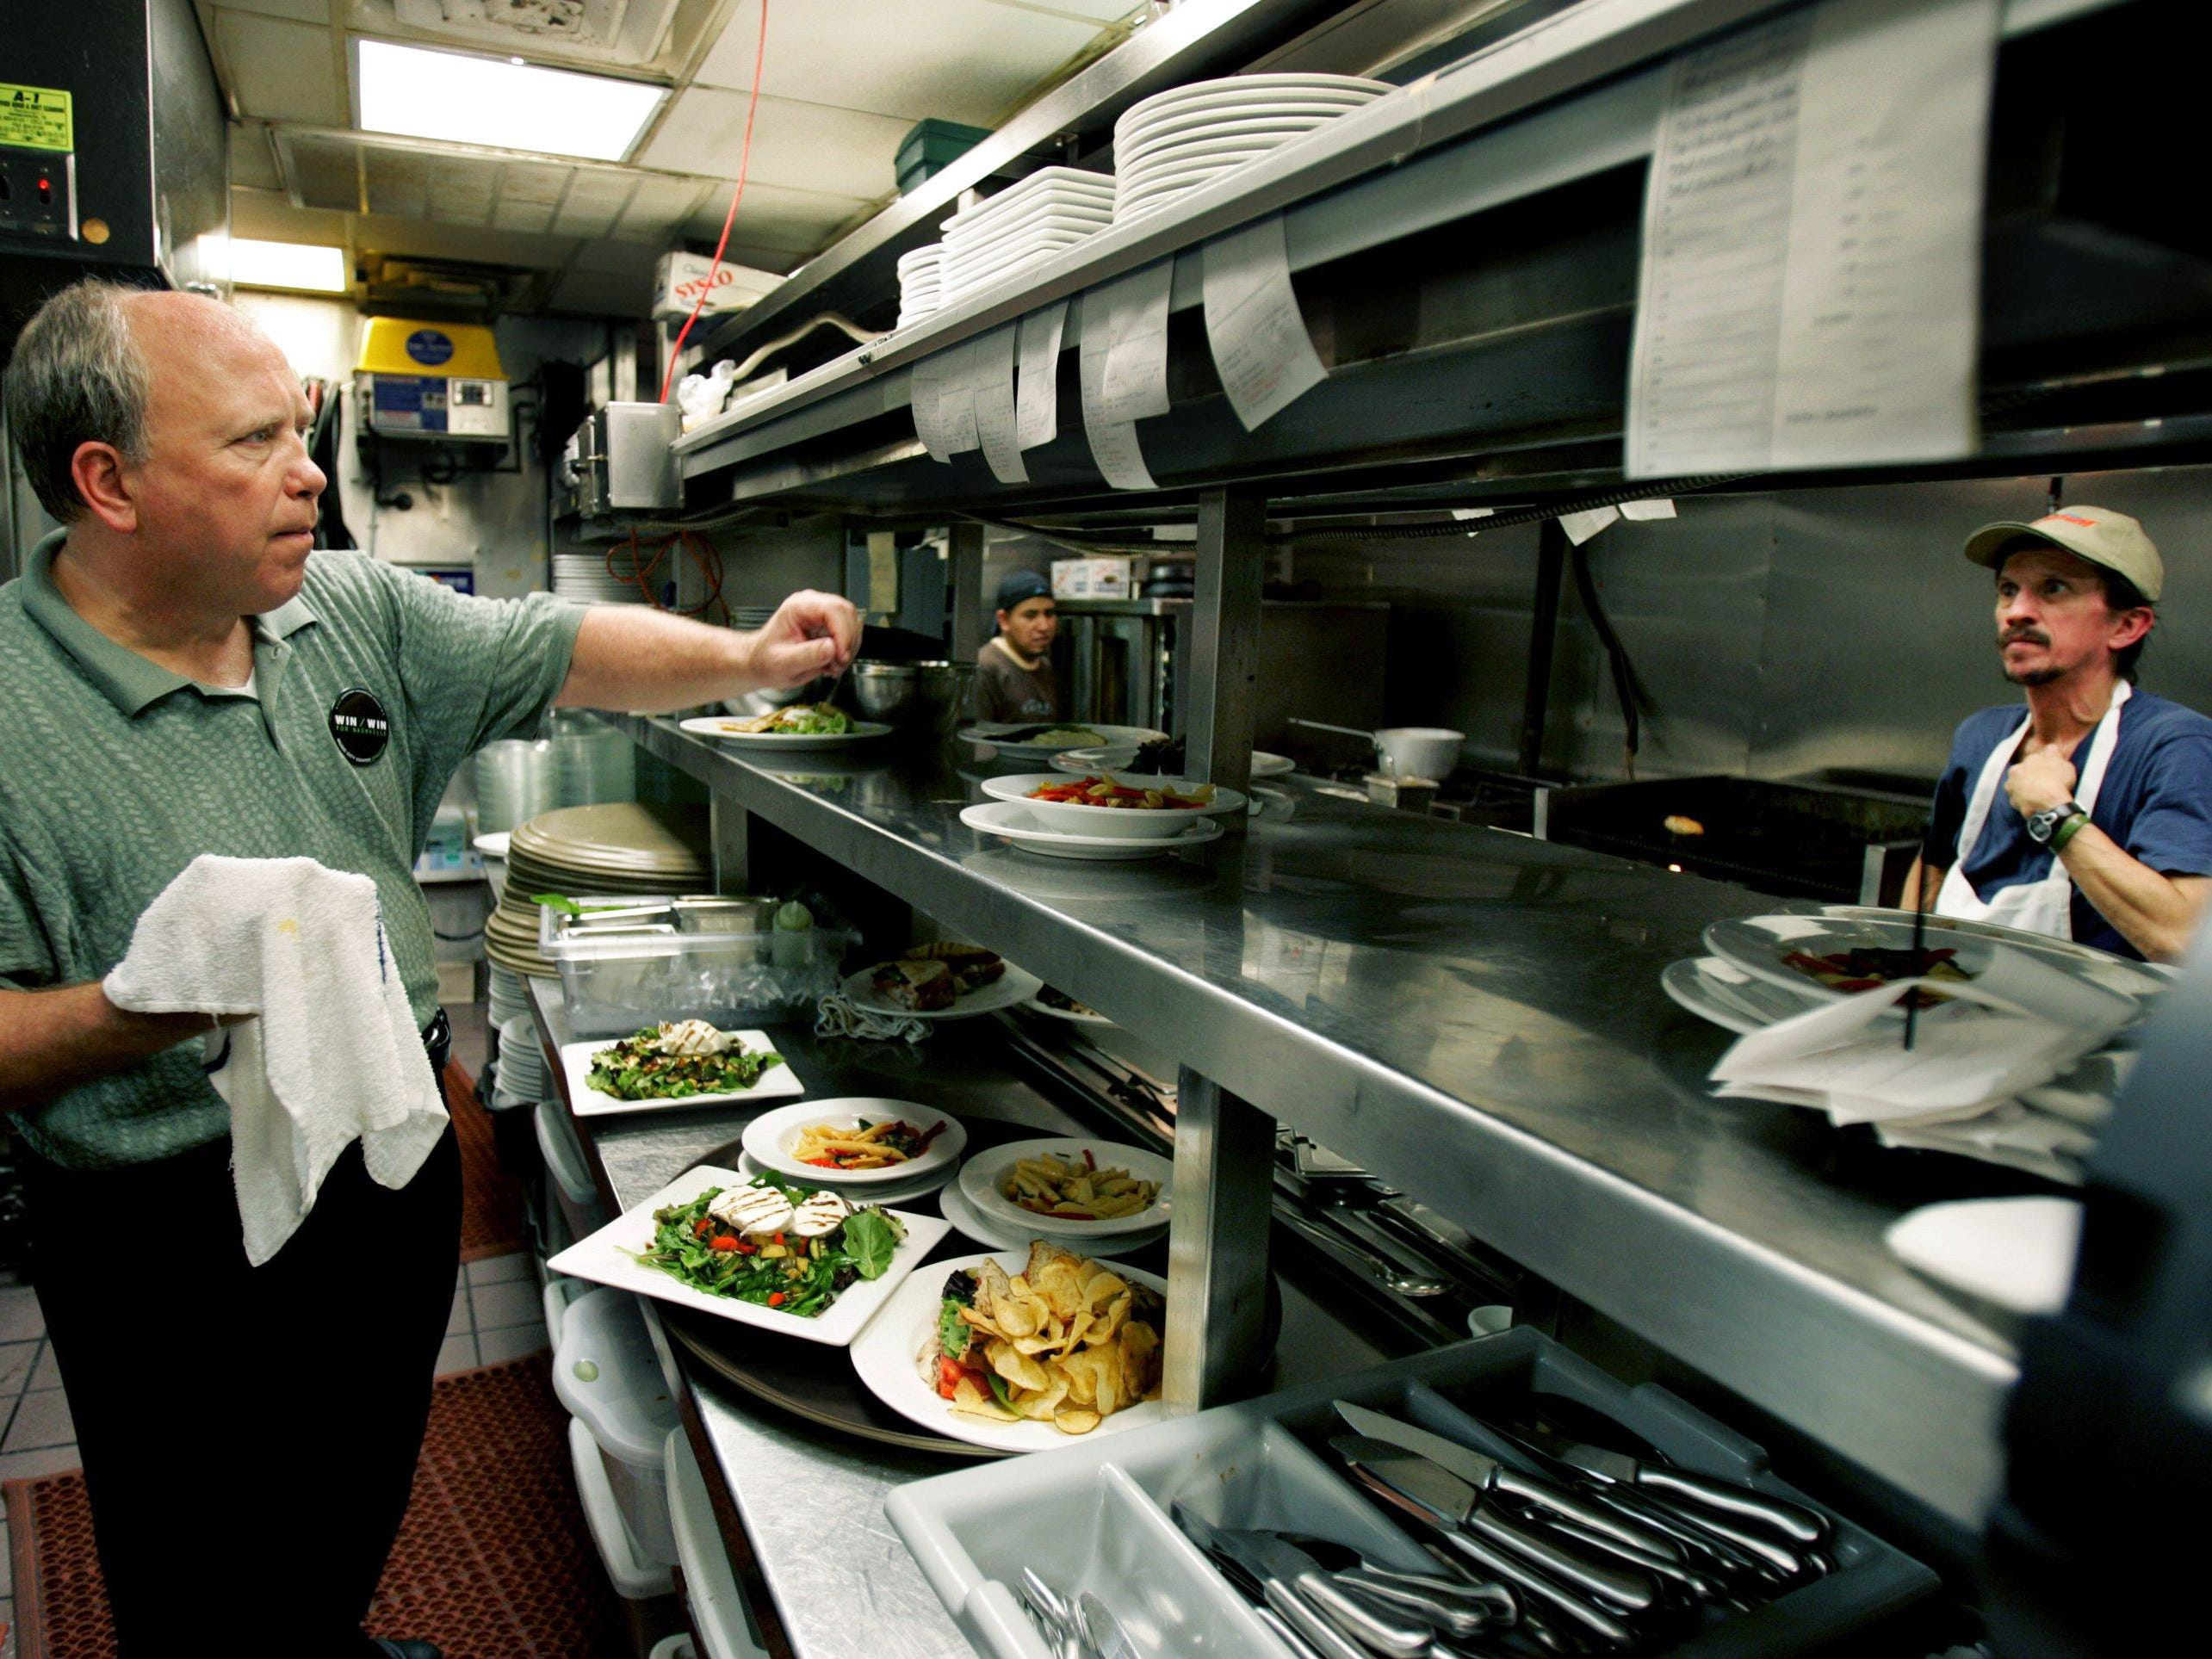 Randy Rayburn, left, owner of Sunset Grill in Hillsboro Village, set up the orders in the kitchen Oct. 17, 2006 during the lunch crowd. Cookers are Al Rubio, center, and Randy McClendon.